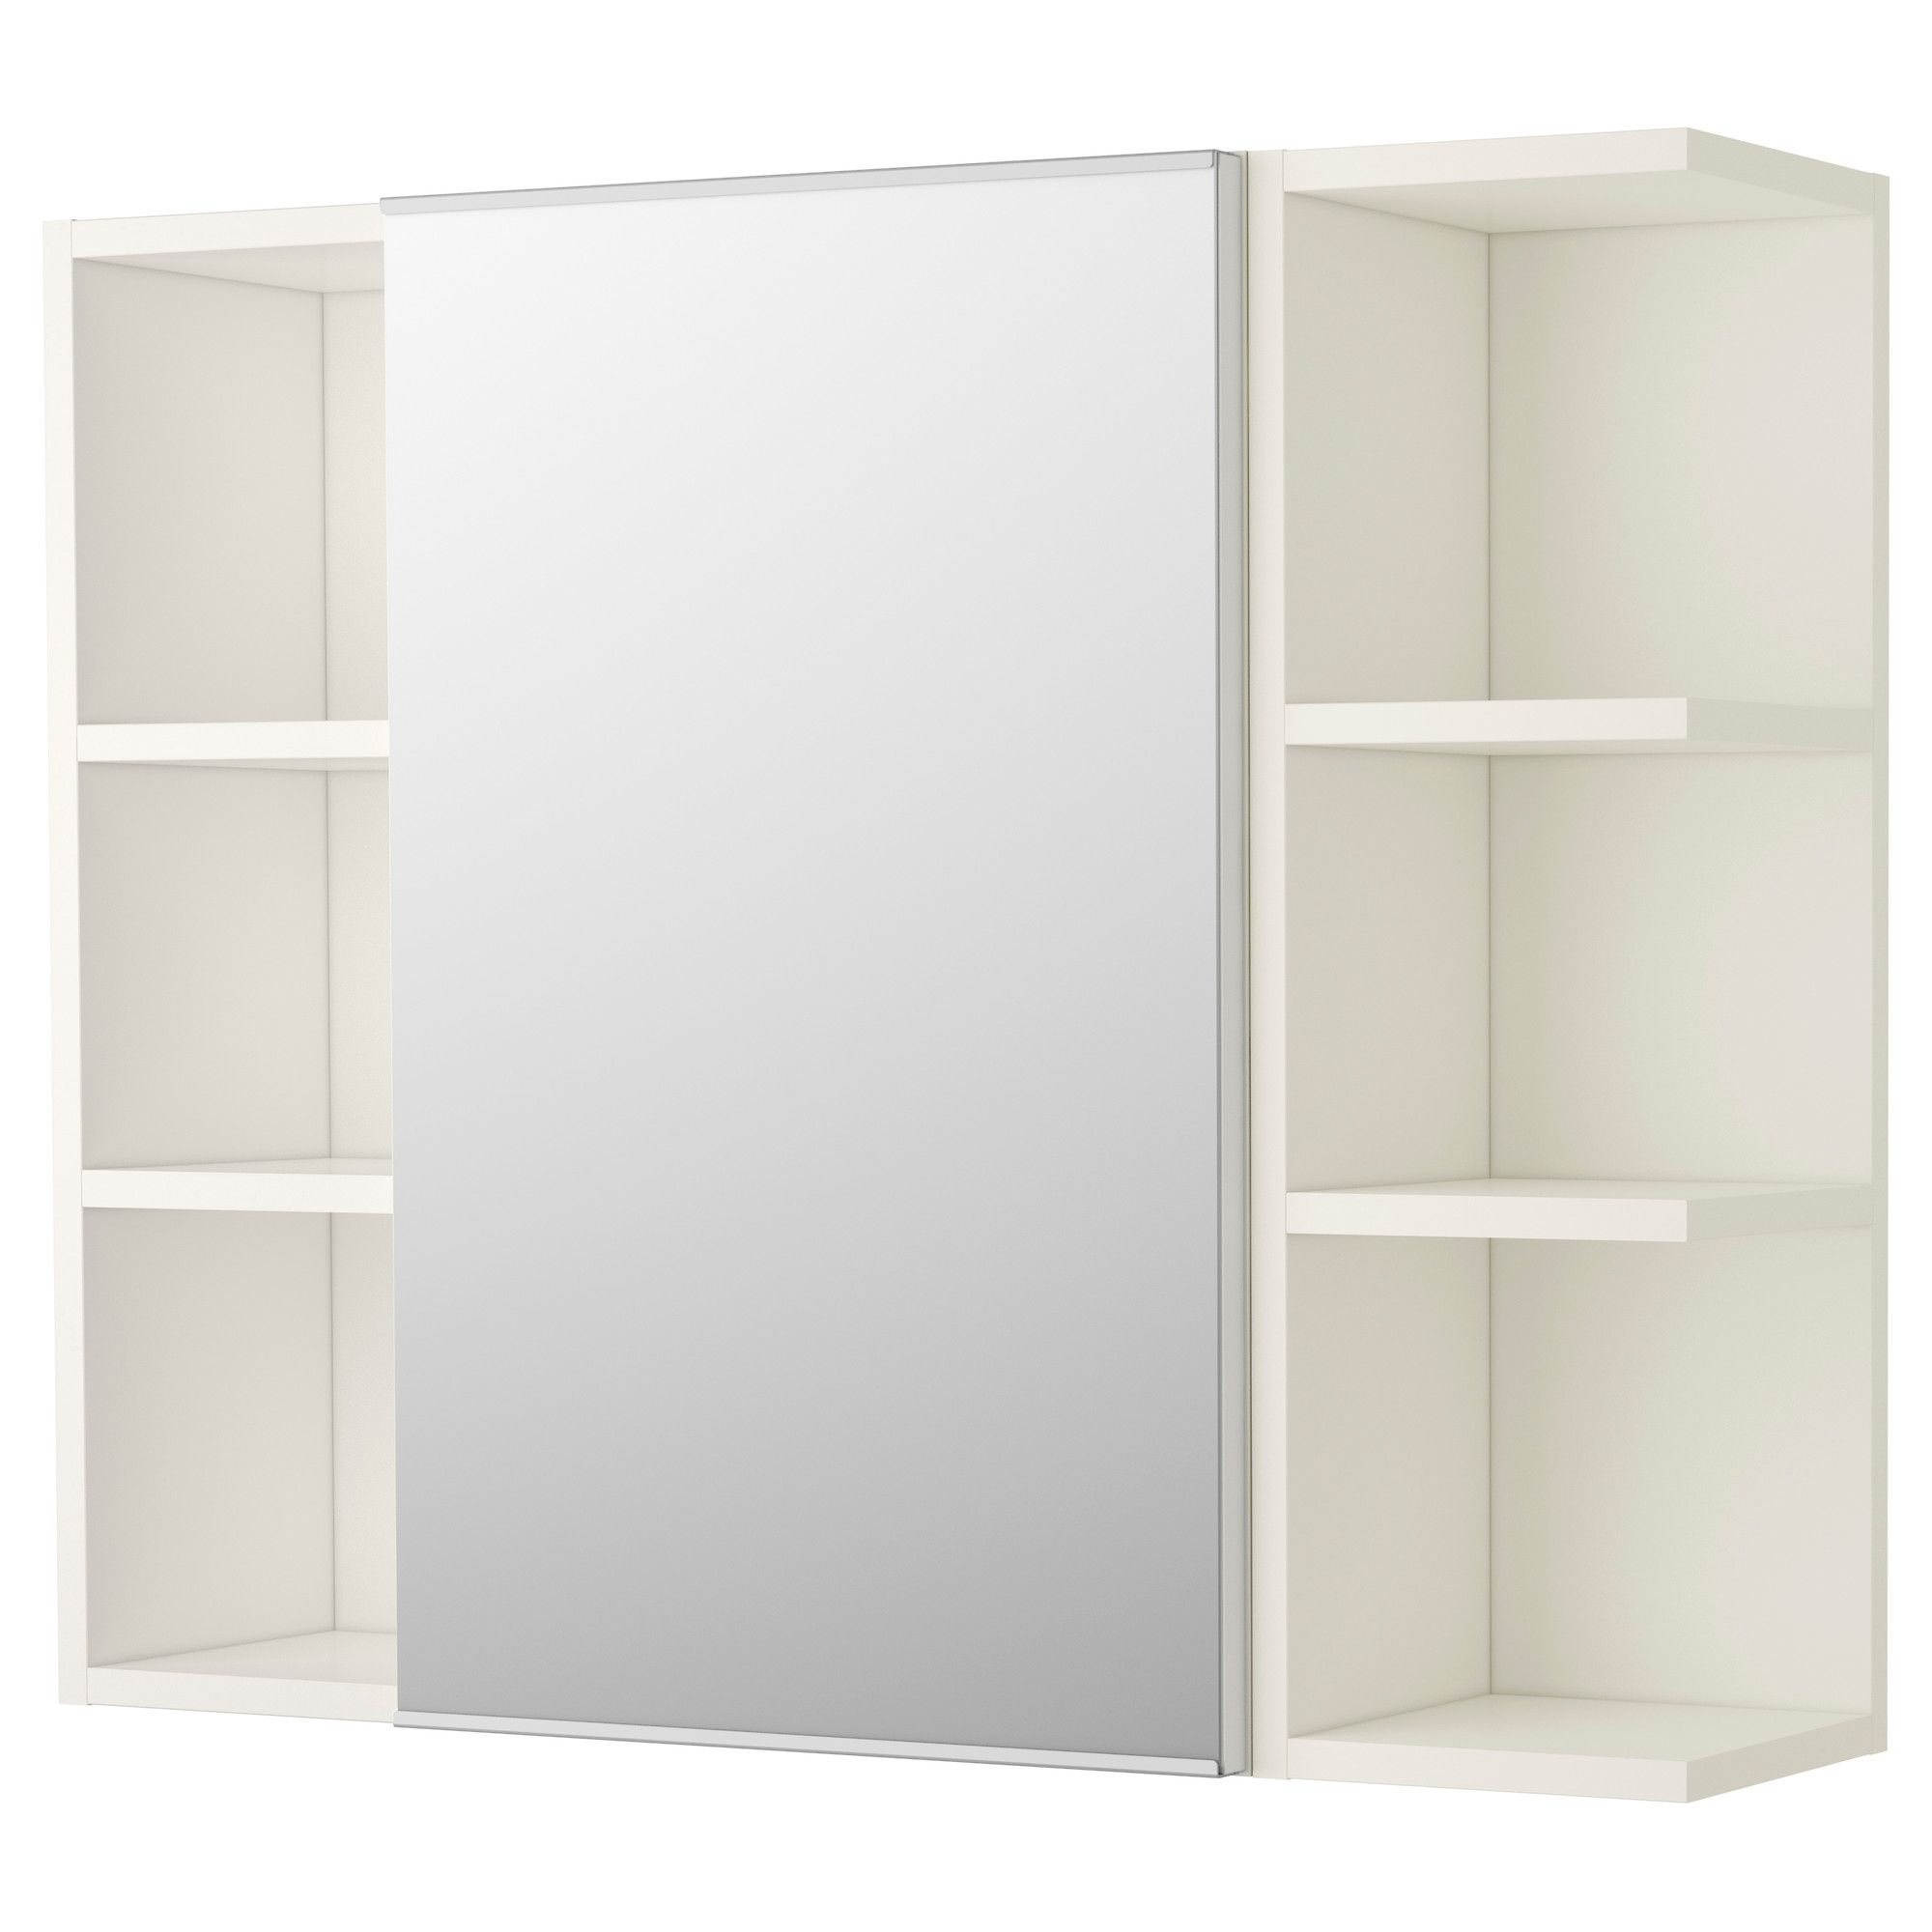 Ziel Badezimmer Storage Bad Space Saver Walmart Bad Raumwunder Ikea Badezimmer Space Saver Bed Ikea Bad Lagerung Badezimmer Spiegelschrank Badspiegel Mit Regal